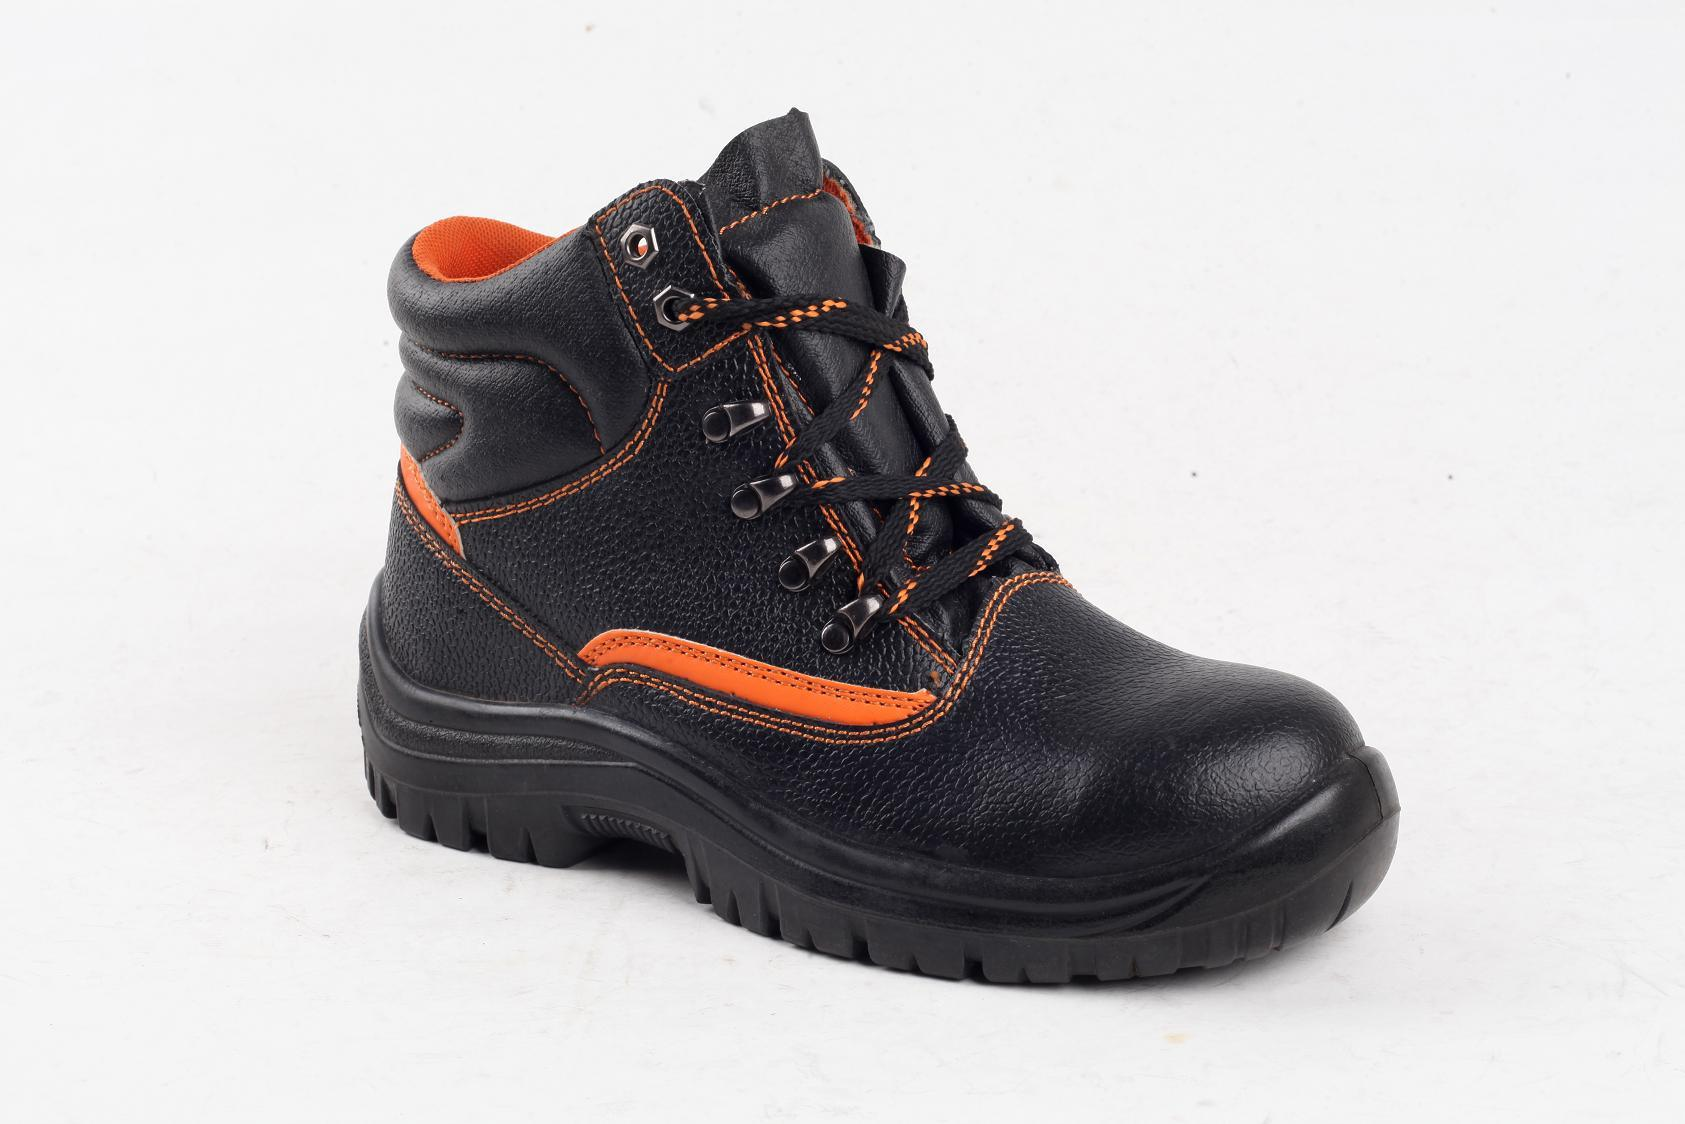 S1p Full Grain Leather/Cow Split Leather Safety Shoes Sy5004